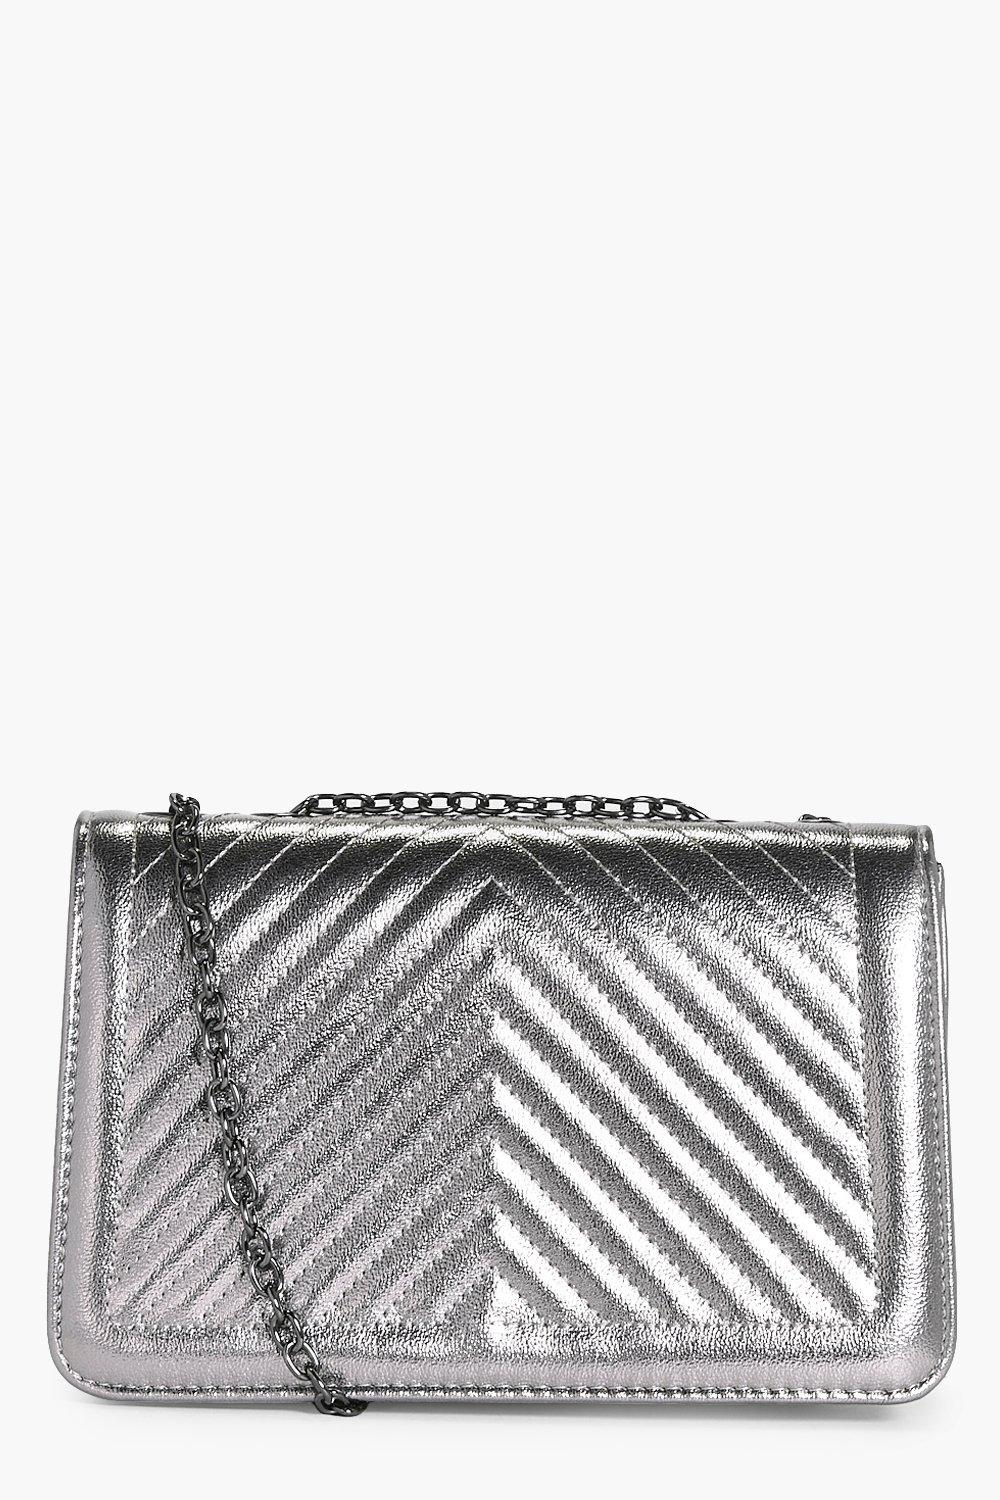 Quilted Metallic Cross Body Bag - pewter - Laura Q